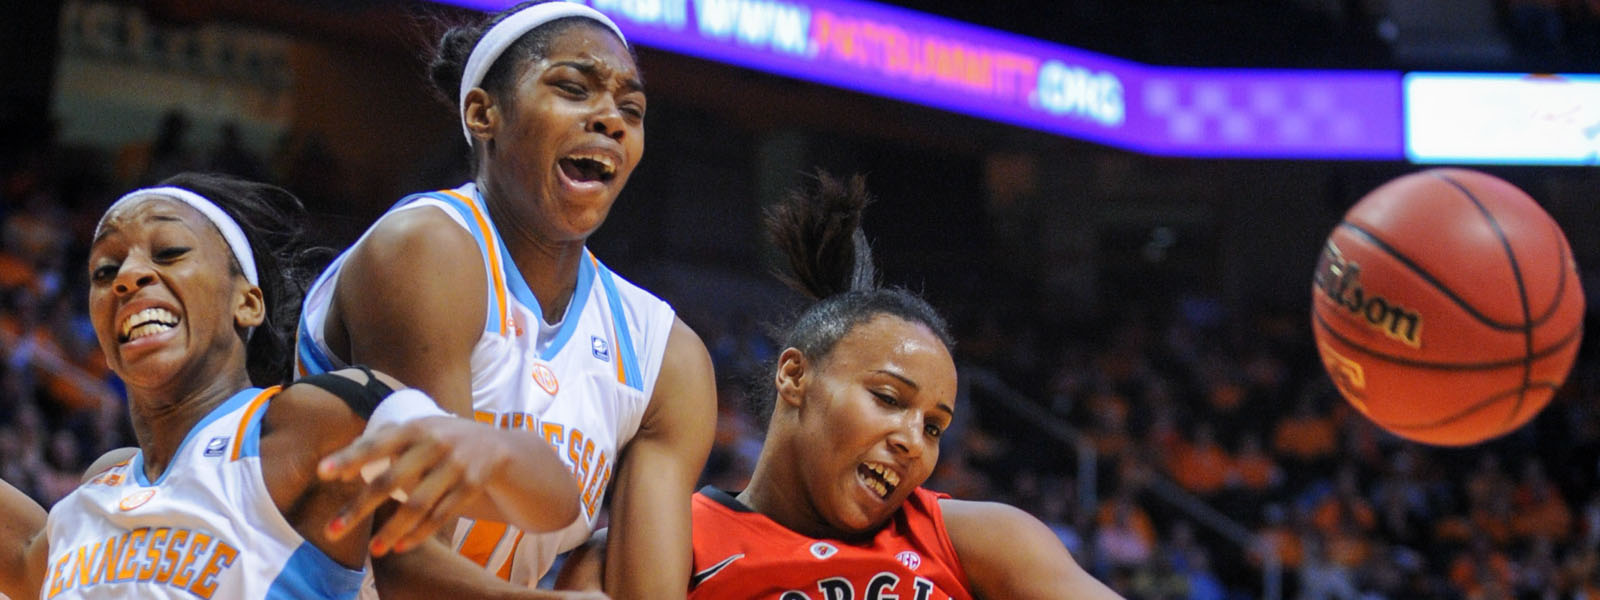 Tennessee Lady Volunteers Basketball